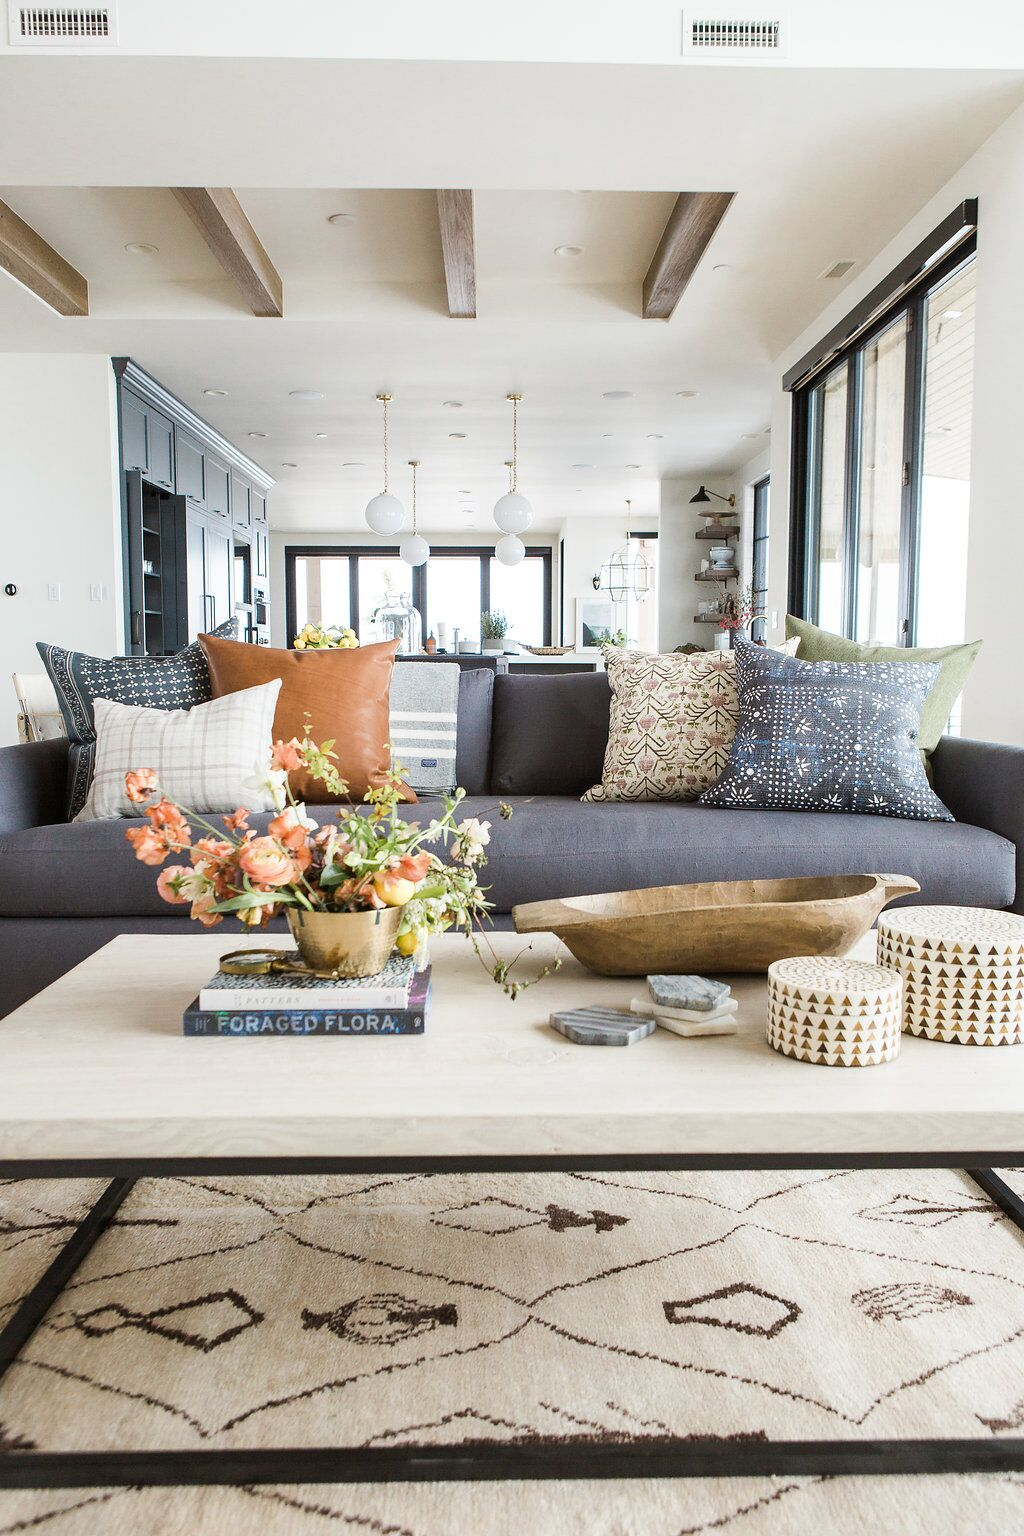 Simple Ways To Update Your Farmhouse Living Room. You are going to find a ton of inspiration on different ways to give your space a refresh! Enjoy!